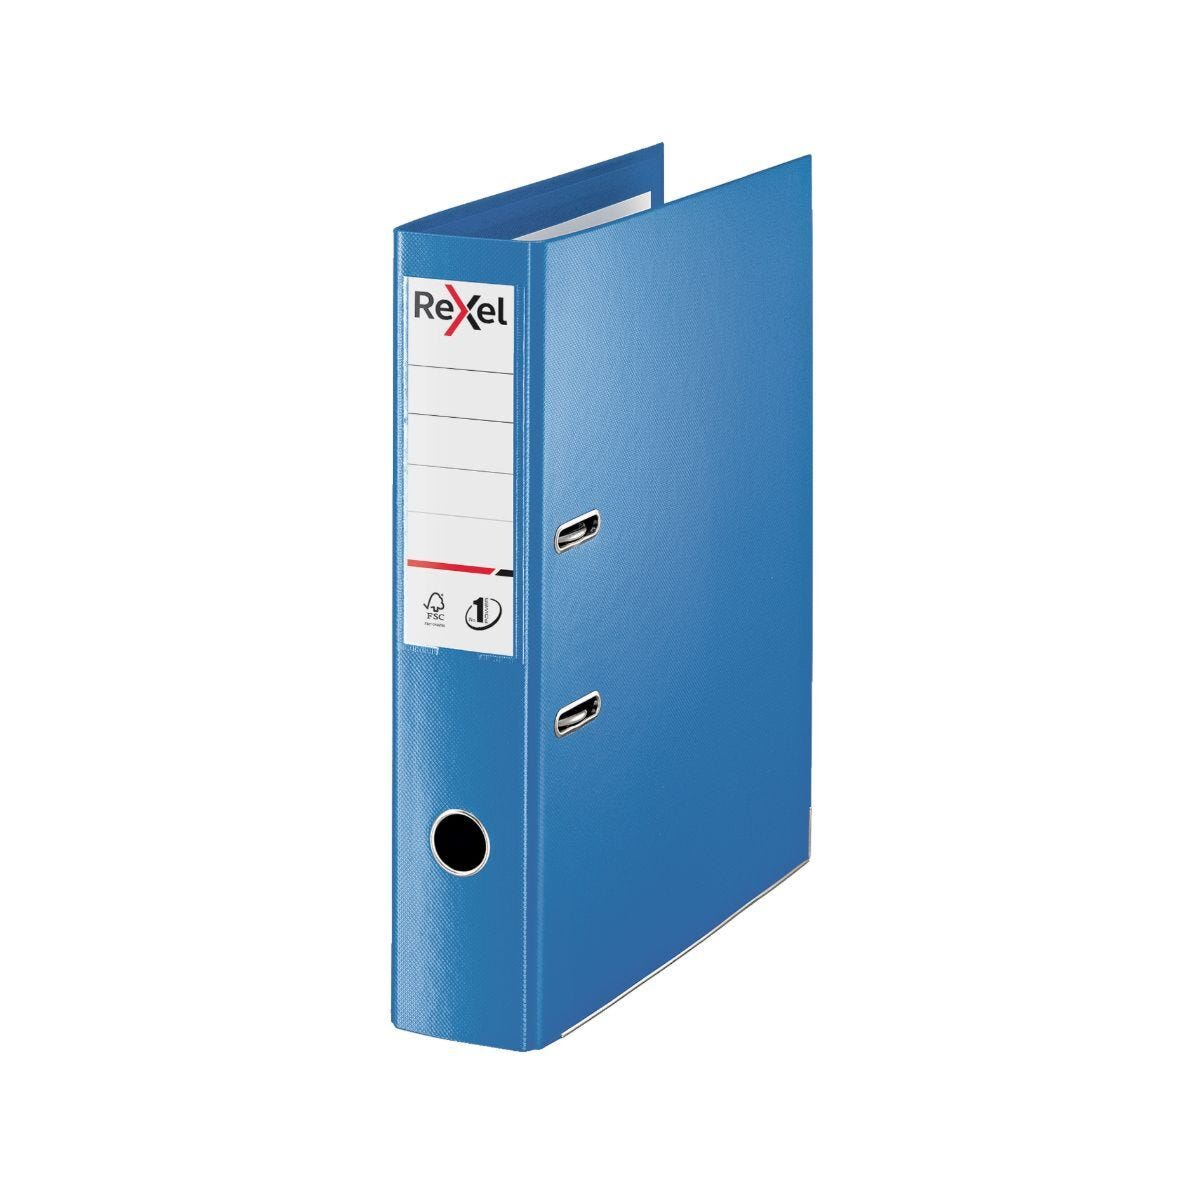 Rexel Choices Lever Arch File Foolscap PP 75mm Pack of 10 Blue